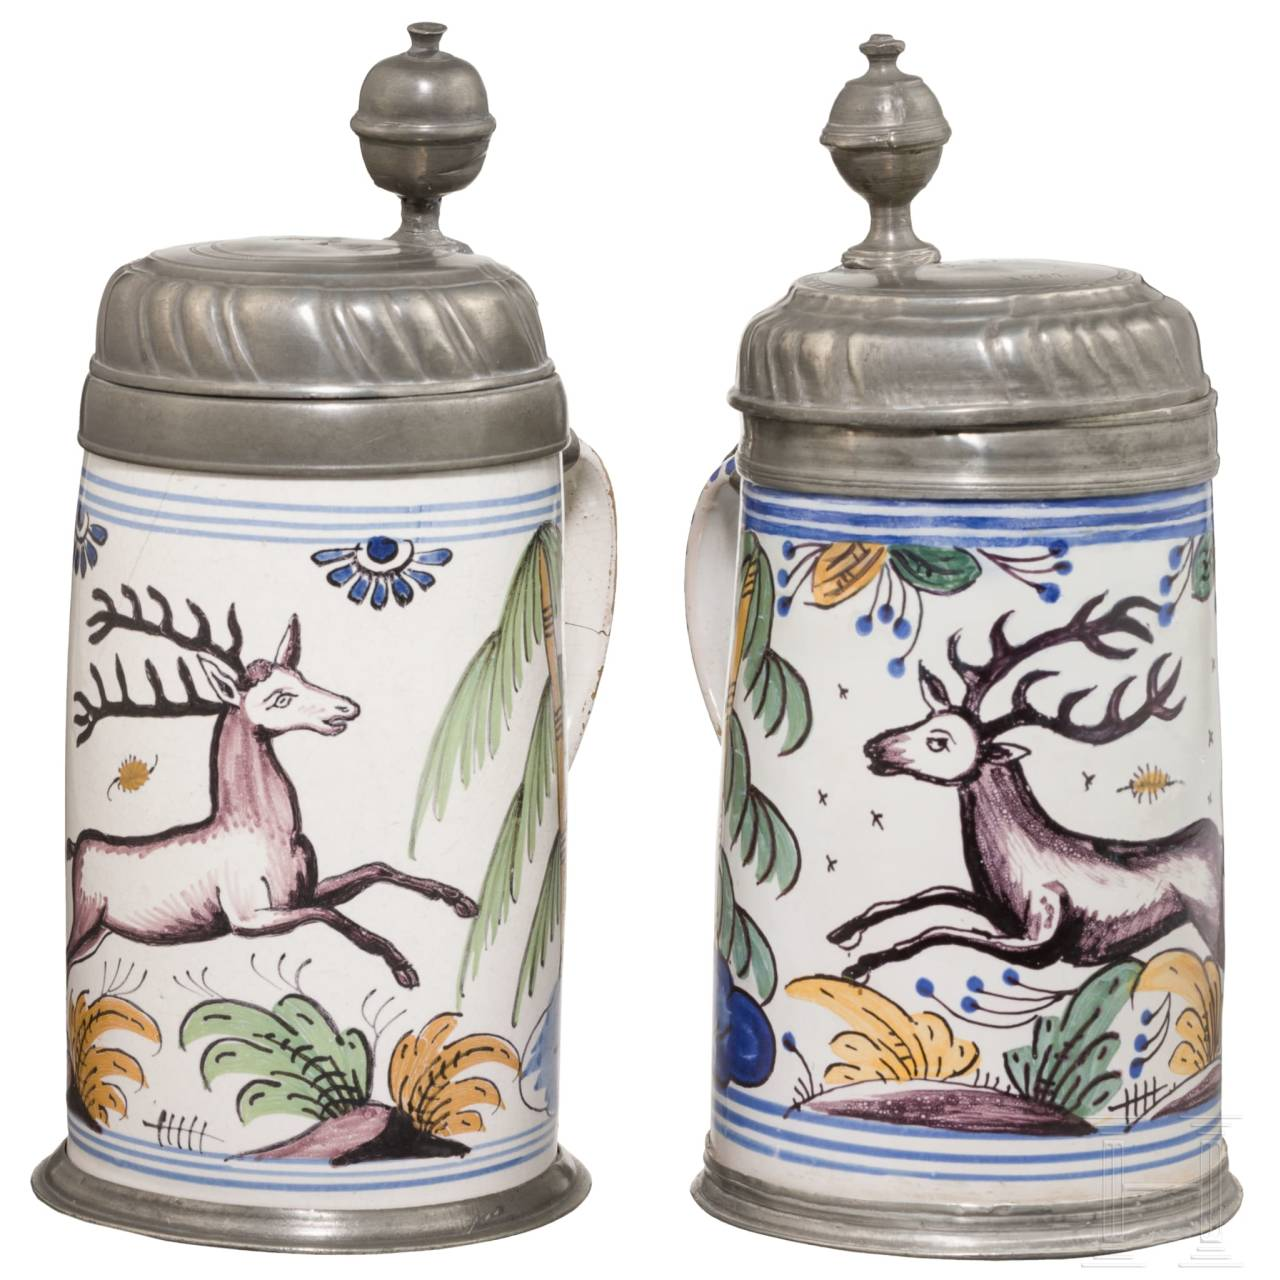 A pair of fayence tankards, Bayreuth, 2nd half of the 18th century